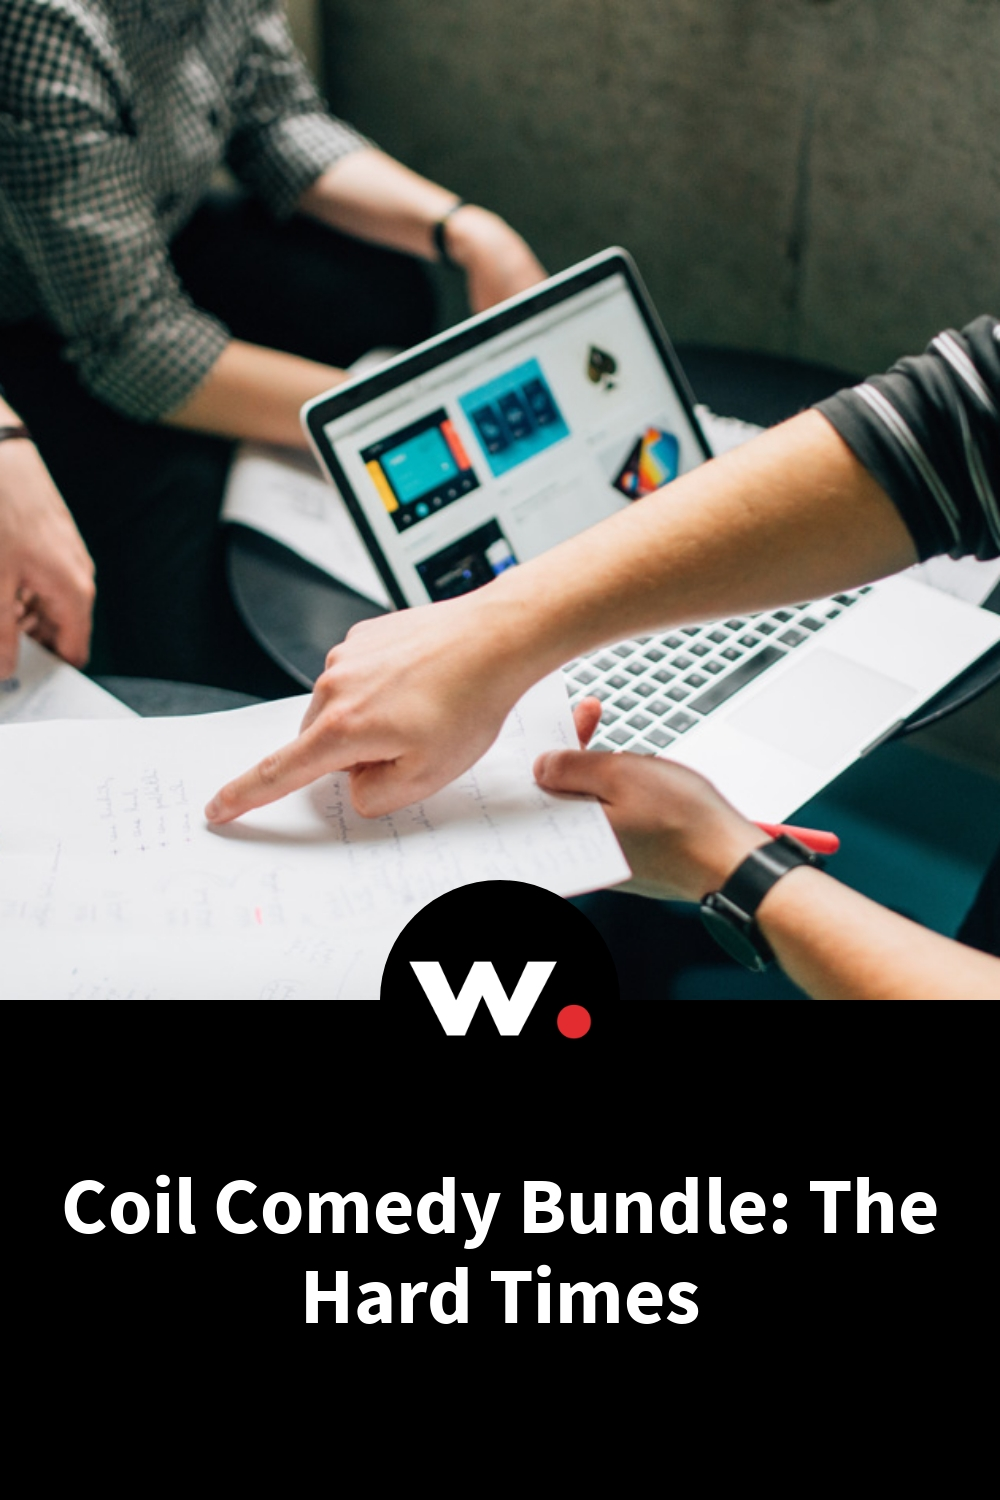 Coil Comedy Bundle: The Hard Times